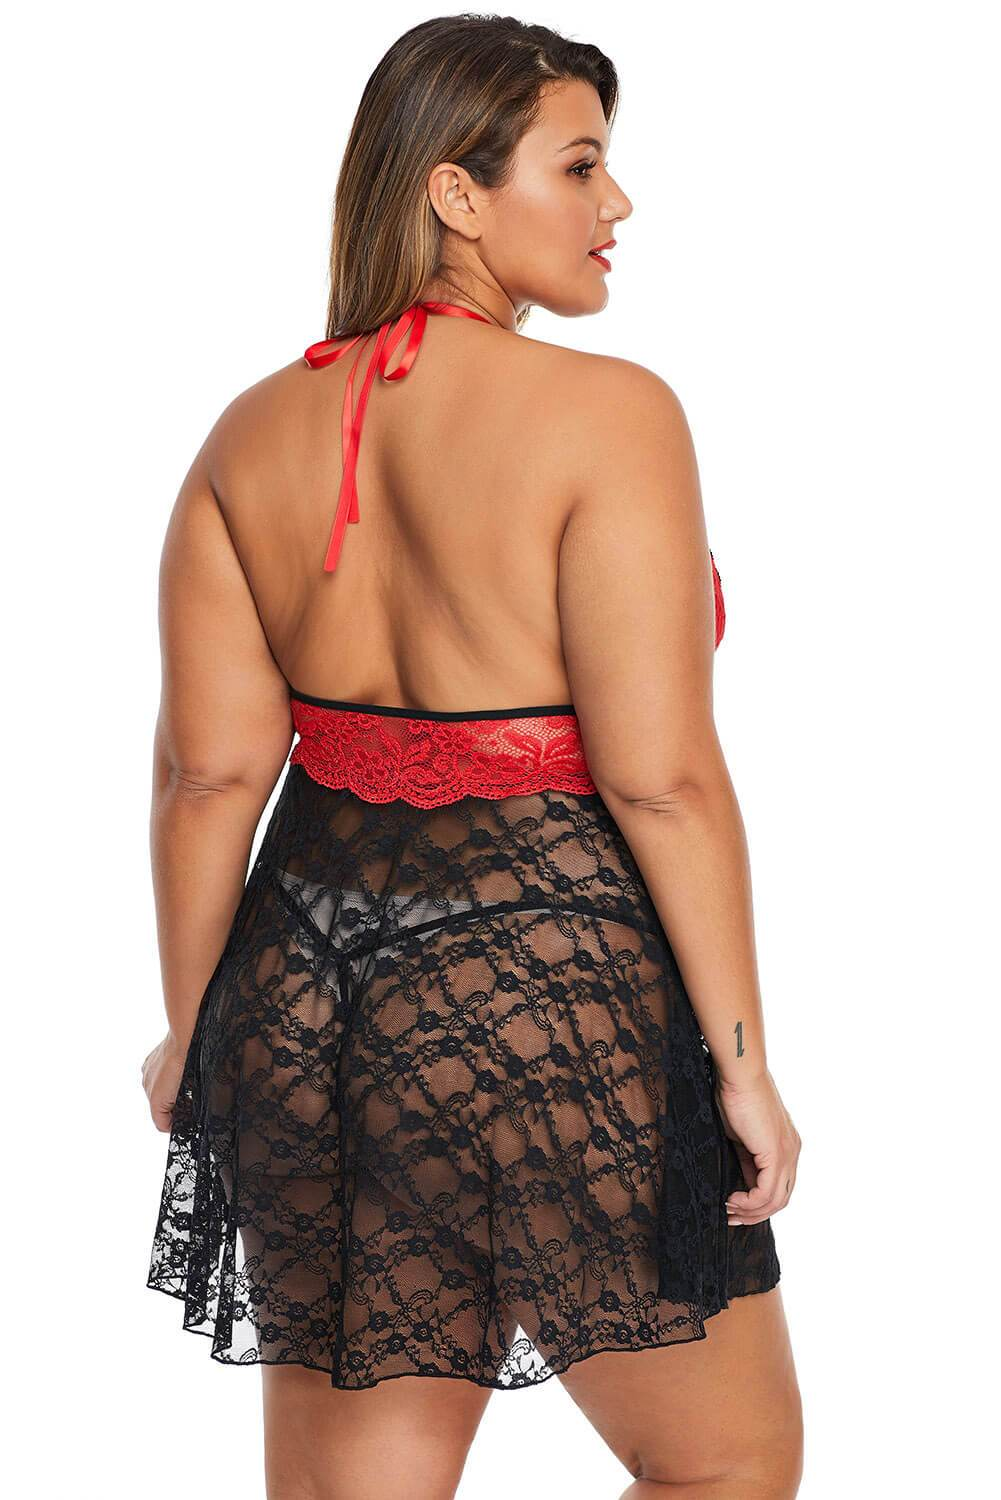 Red Sexy Lace Backless Halter Plus Size Babydoll-Plus Size Clothing, Plus Size Lingerie-Azura Exchange